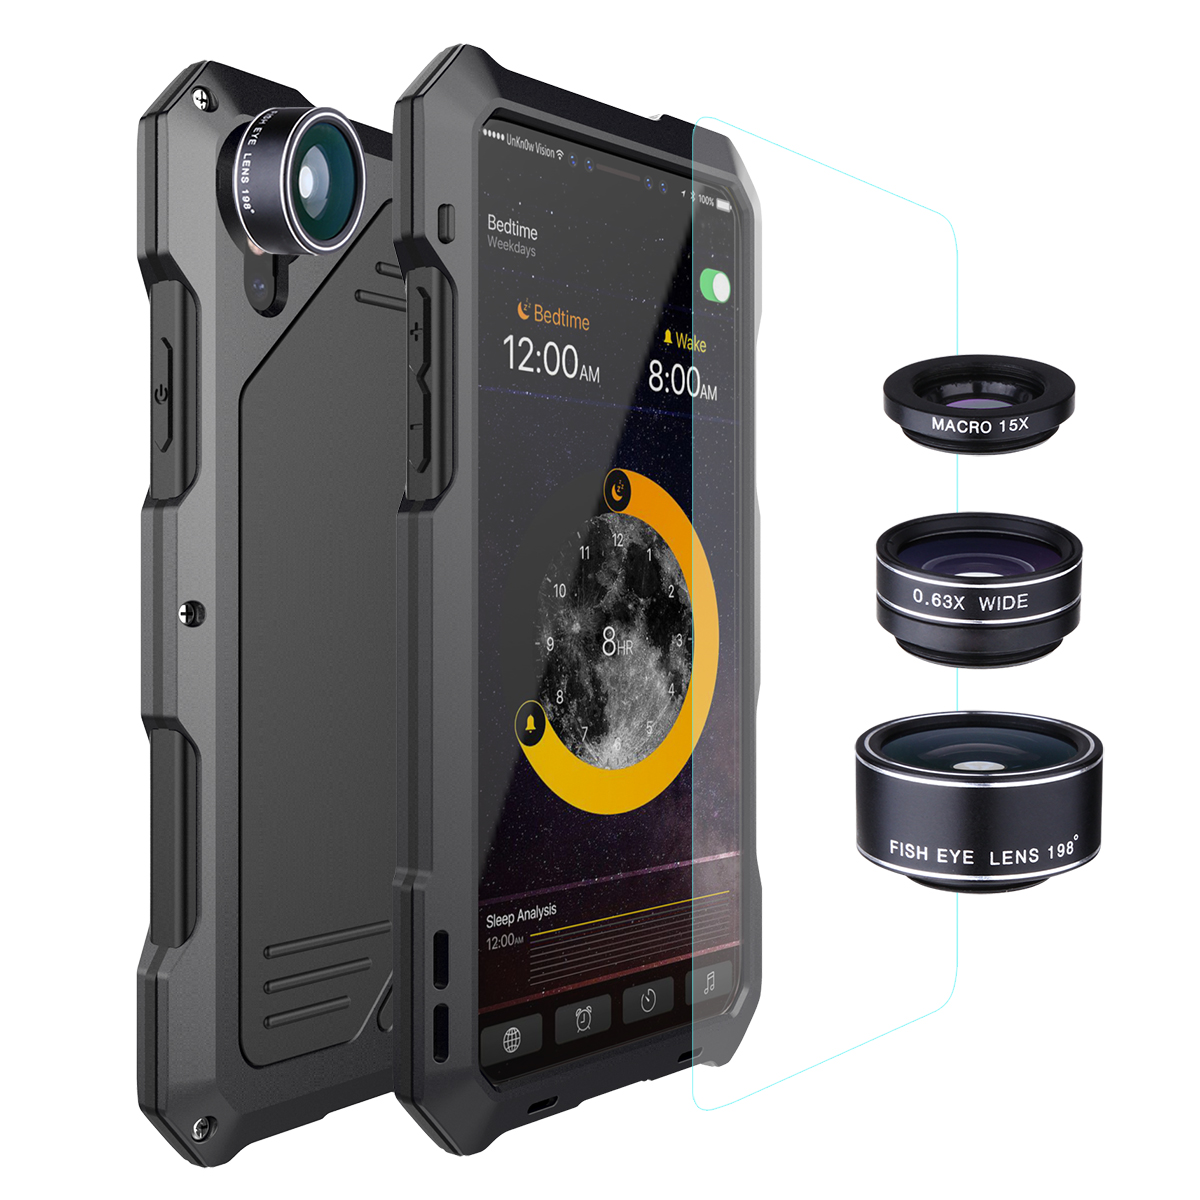 Metal Waterproof Case For IPhone X XS XR XSMAX 5S 6 6S 7 8 Plus Shockproof Alloy Bumper With Macro Wide-angle Fisheye Lens